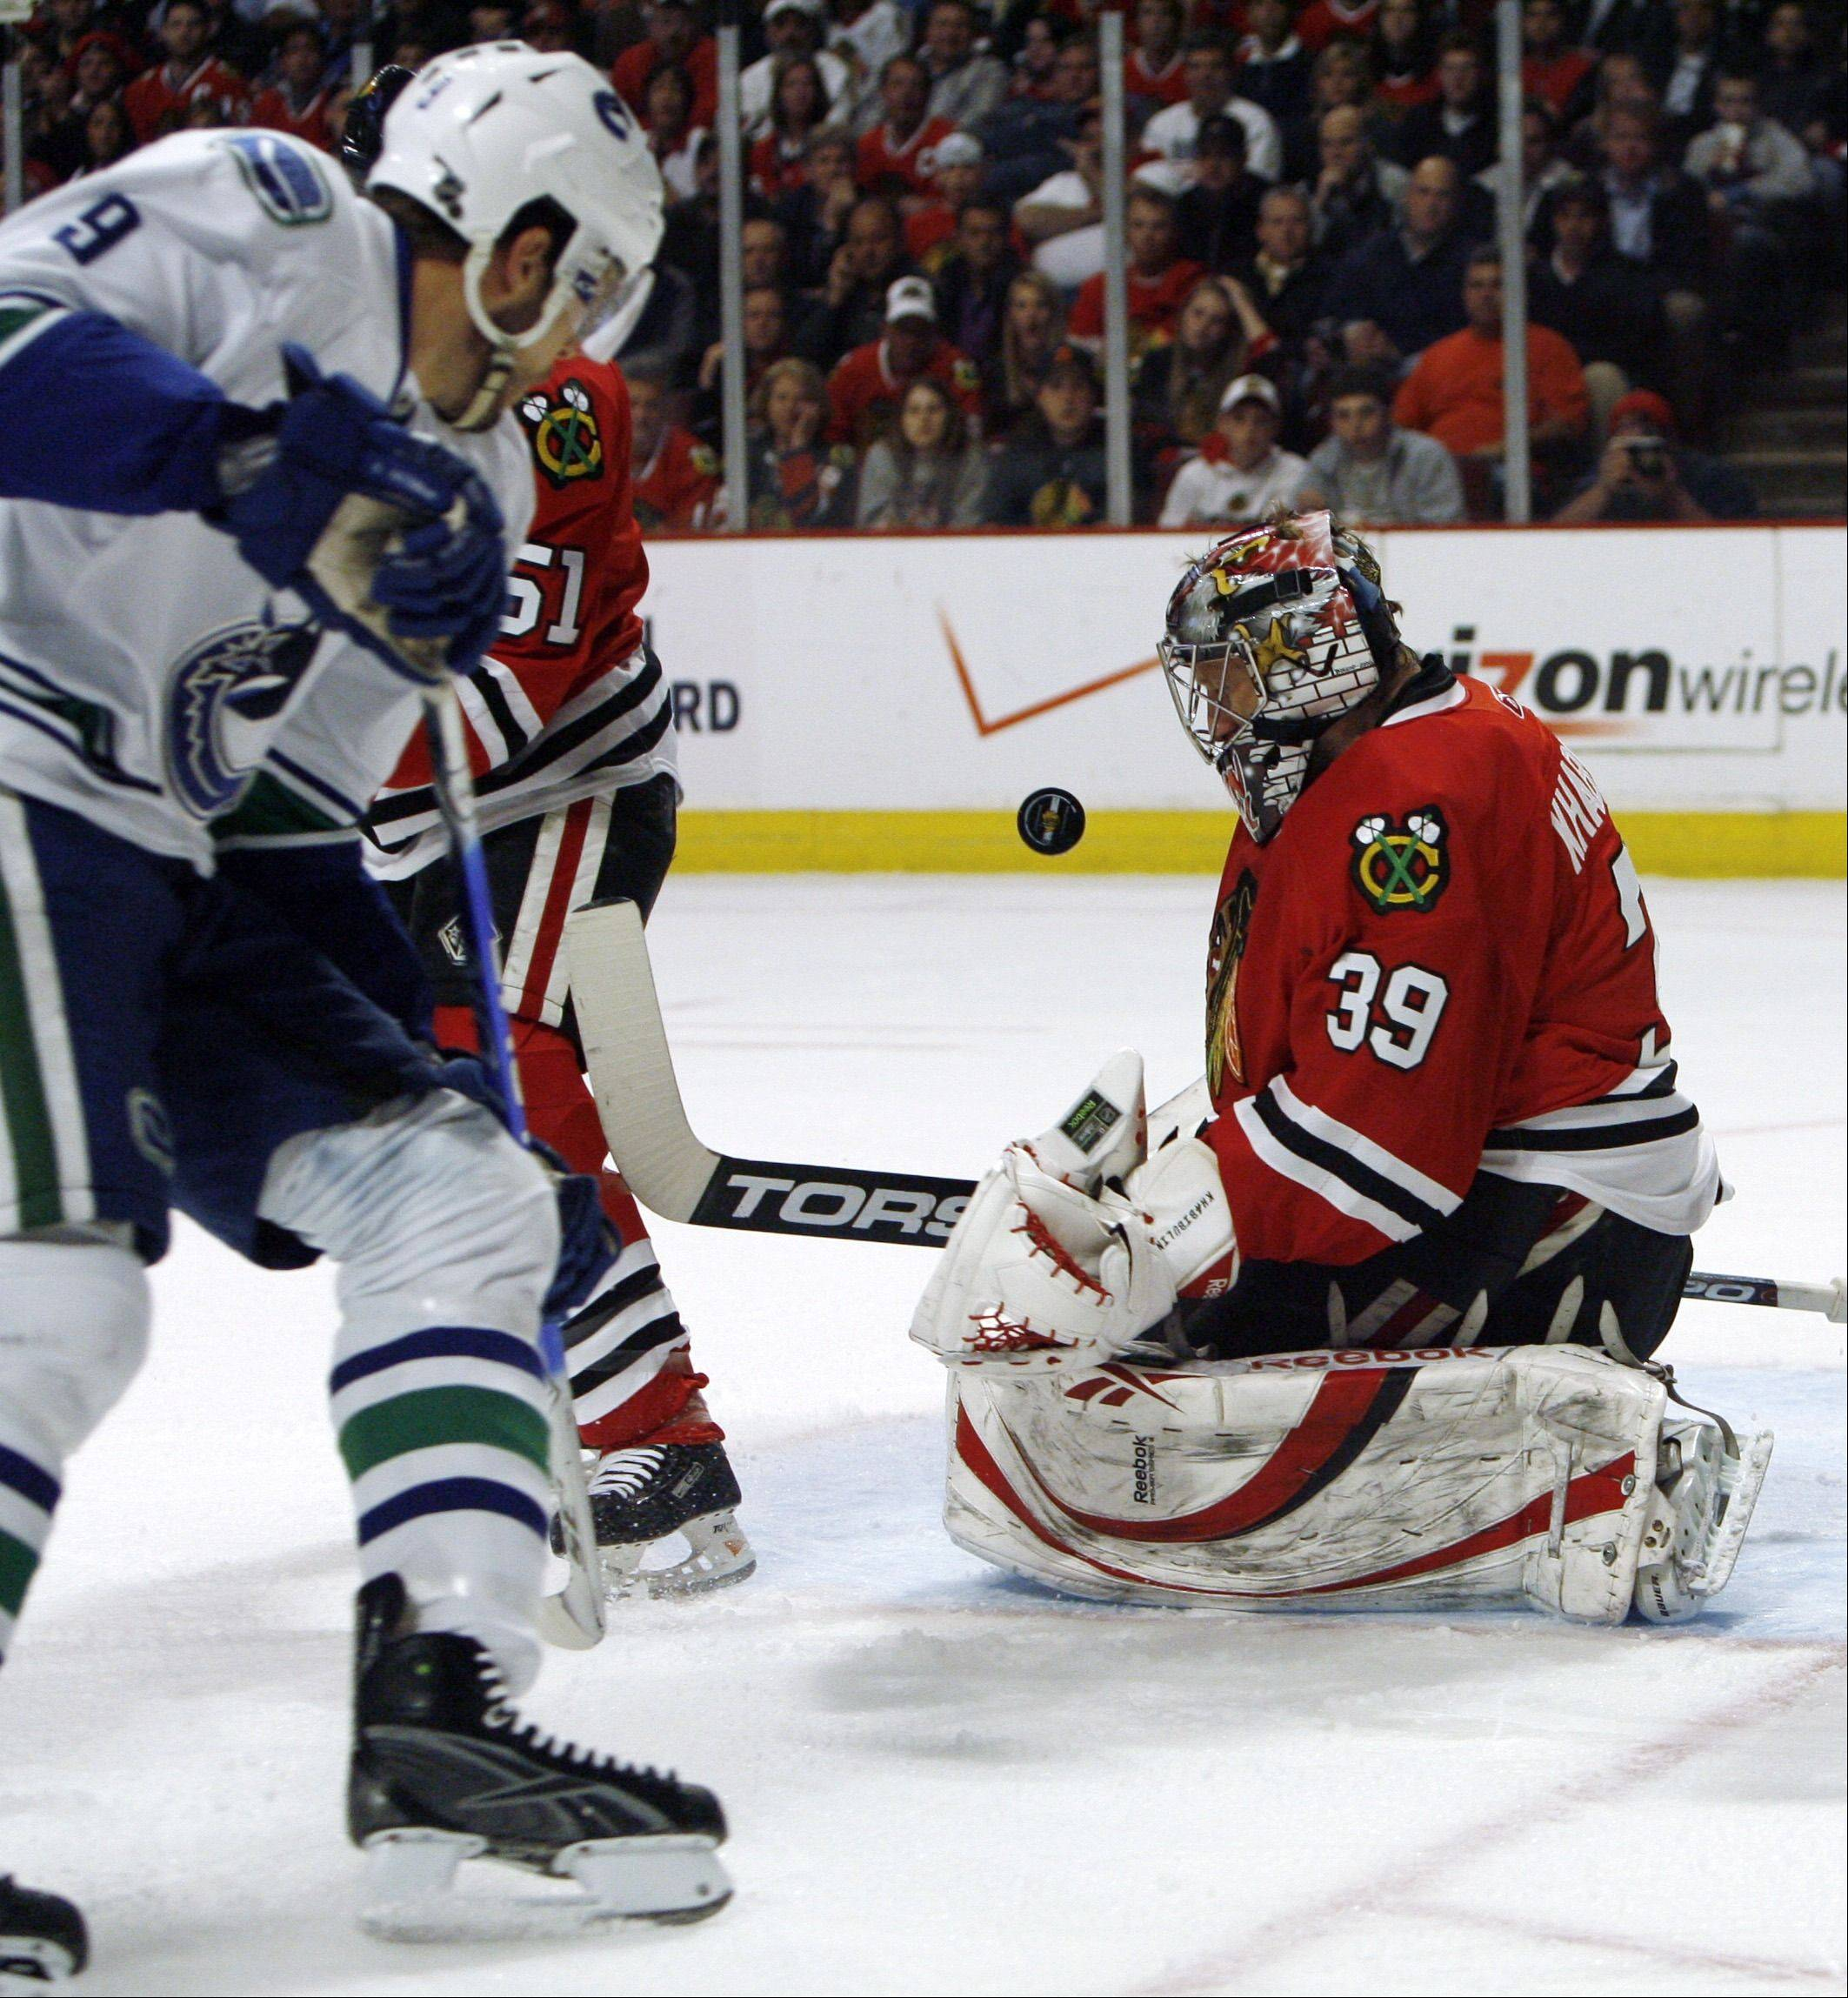 Goalie Nikolai Khabibulin played his last game with the Blackhawks in Game 3 of the 2009 Western Conference finals against the Red Wings.